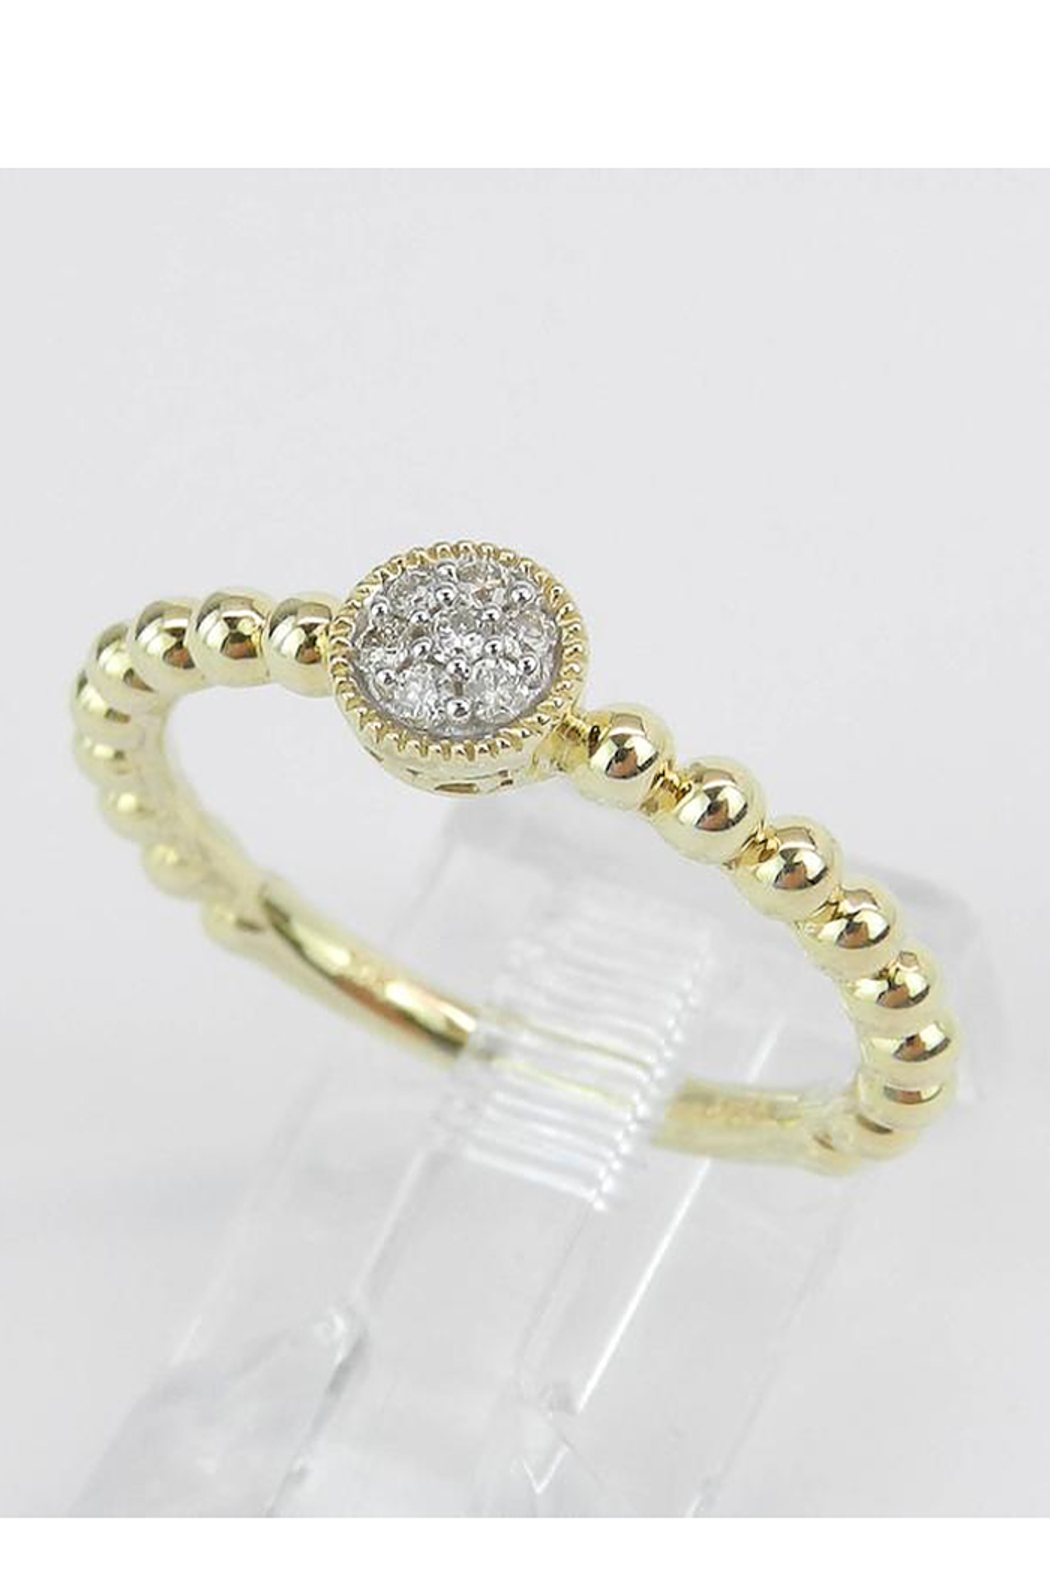 Margolin & Co Diamond Cluster Ring, Diamond Midi Ring, Promise Engagement Ring Yellow Gold Size 7 Graduation Gift - Side Cropped Image